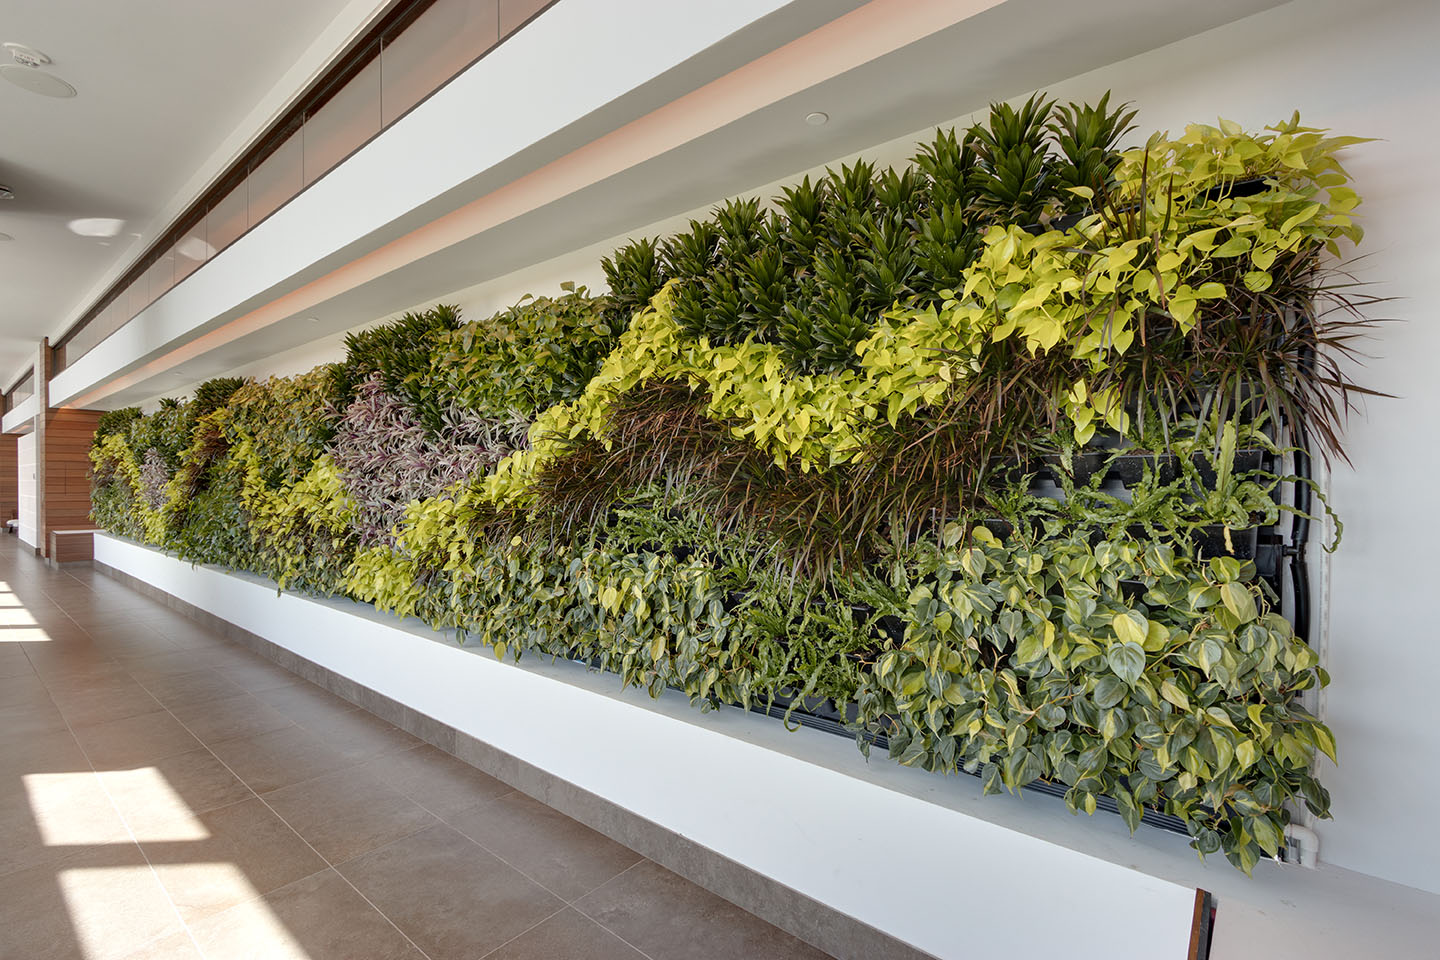 AgroSci Green wall in hallway at The Rock Spa